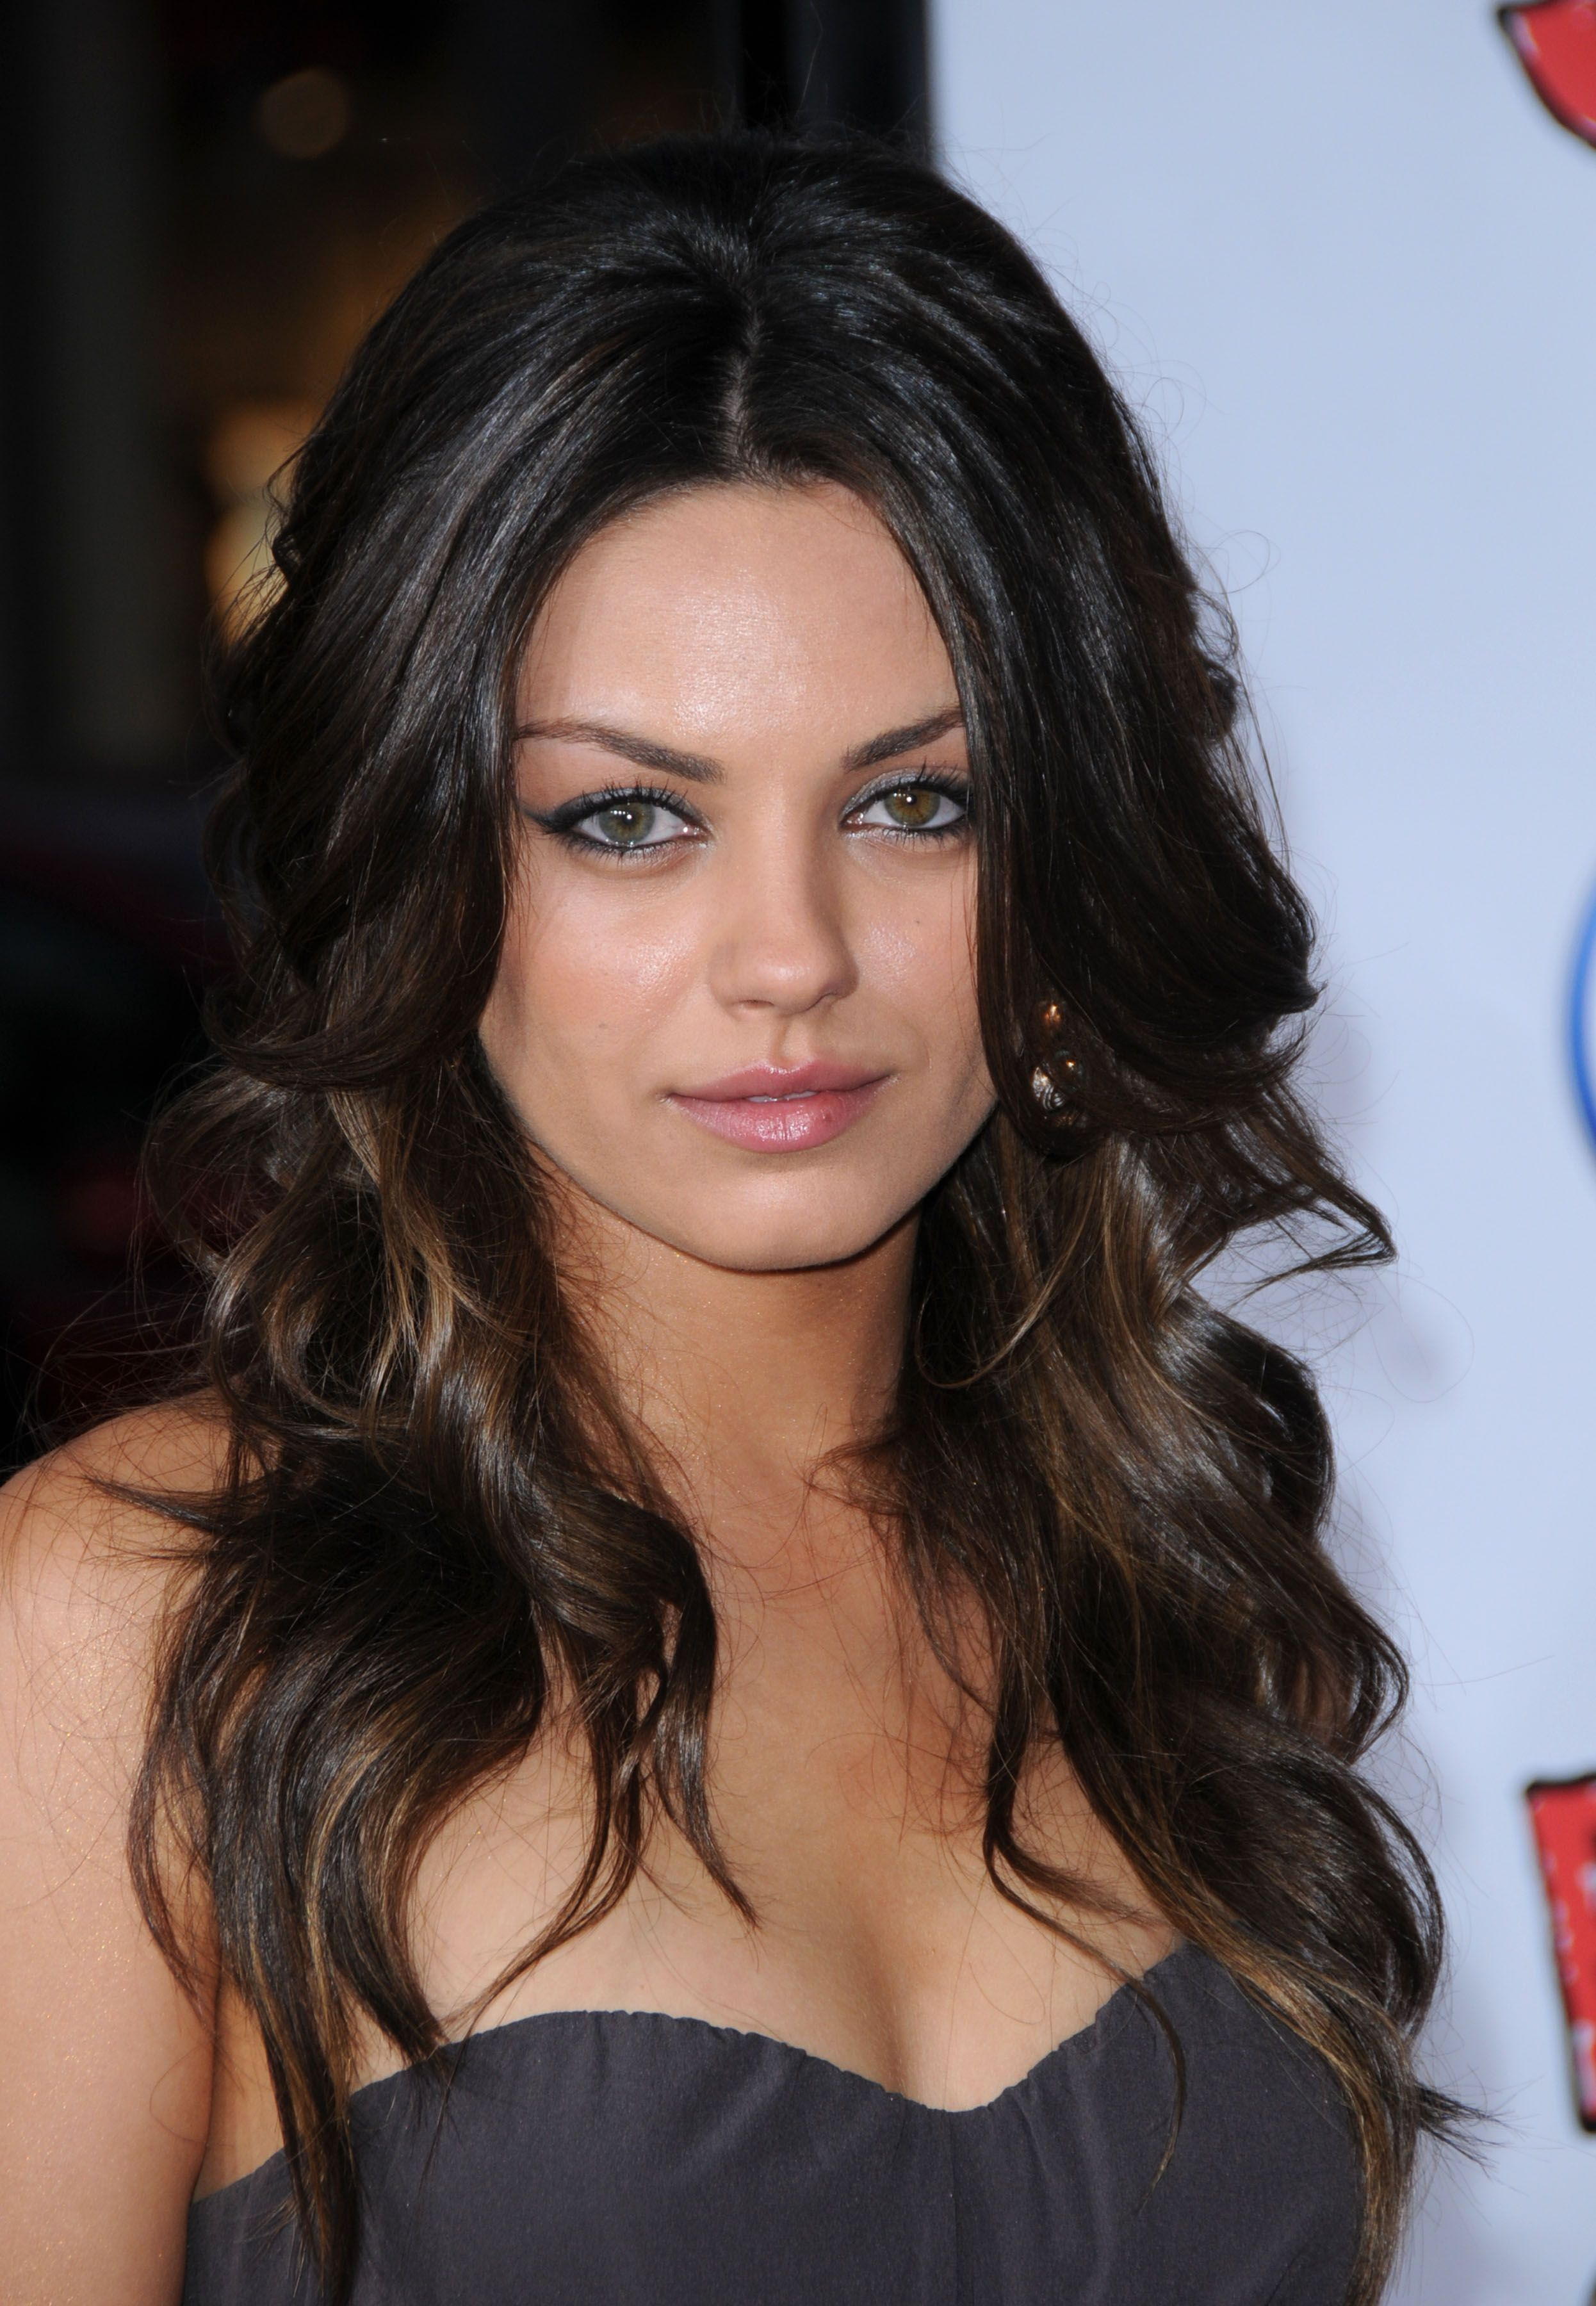 Mila Kunis at premiere for Forgetting Sarah Marshall in LA ...